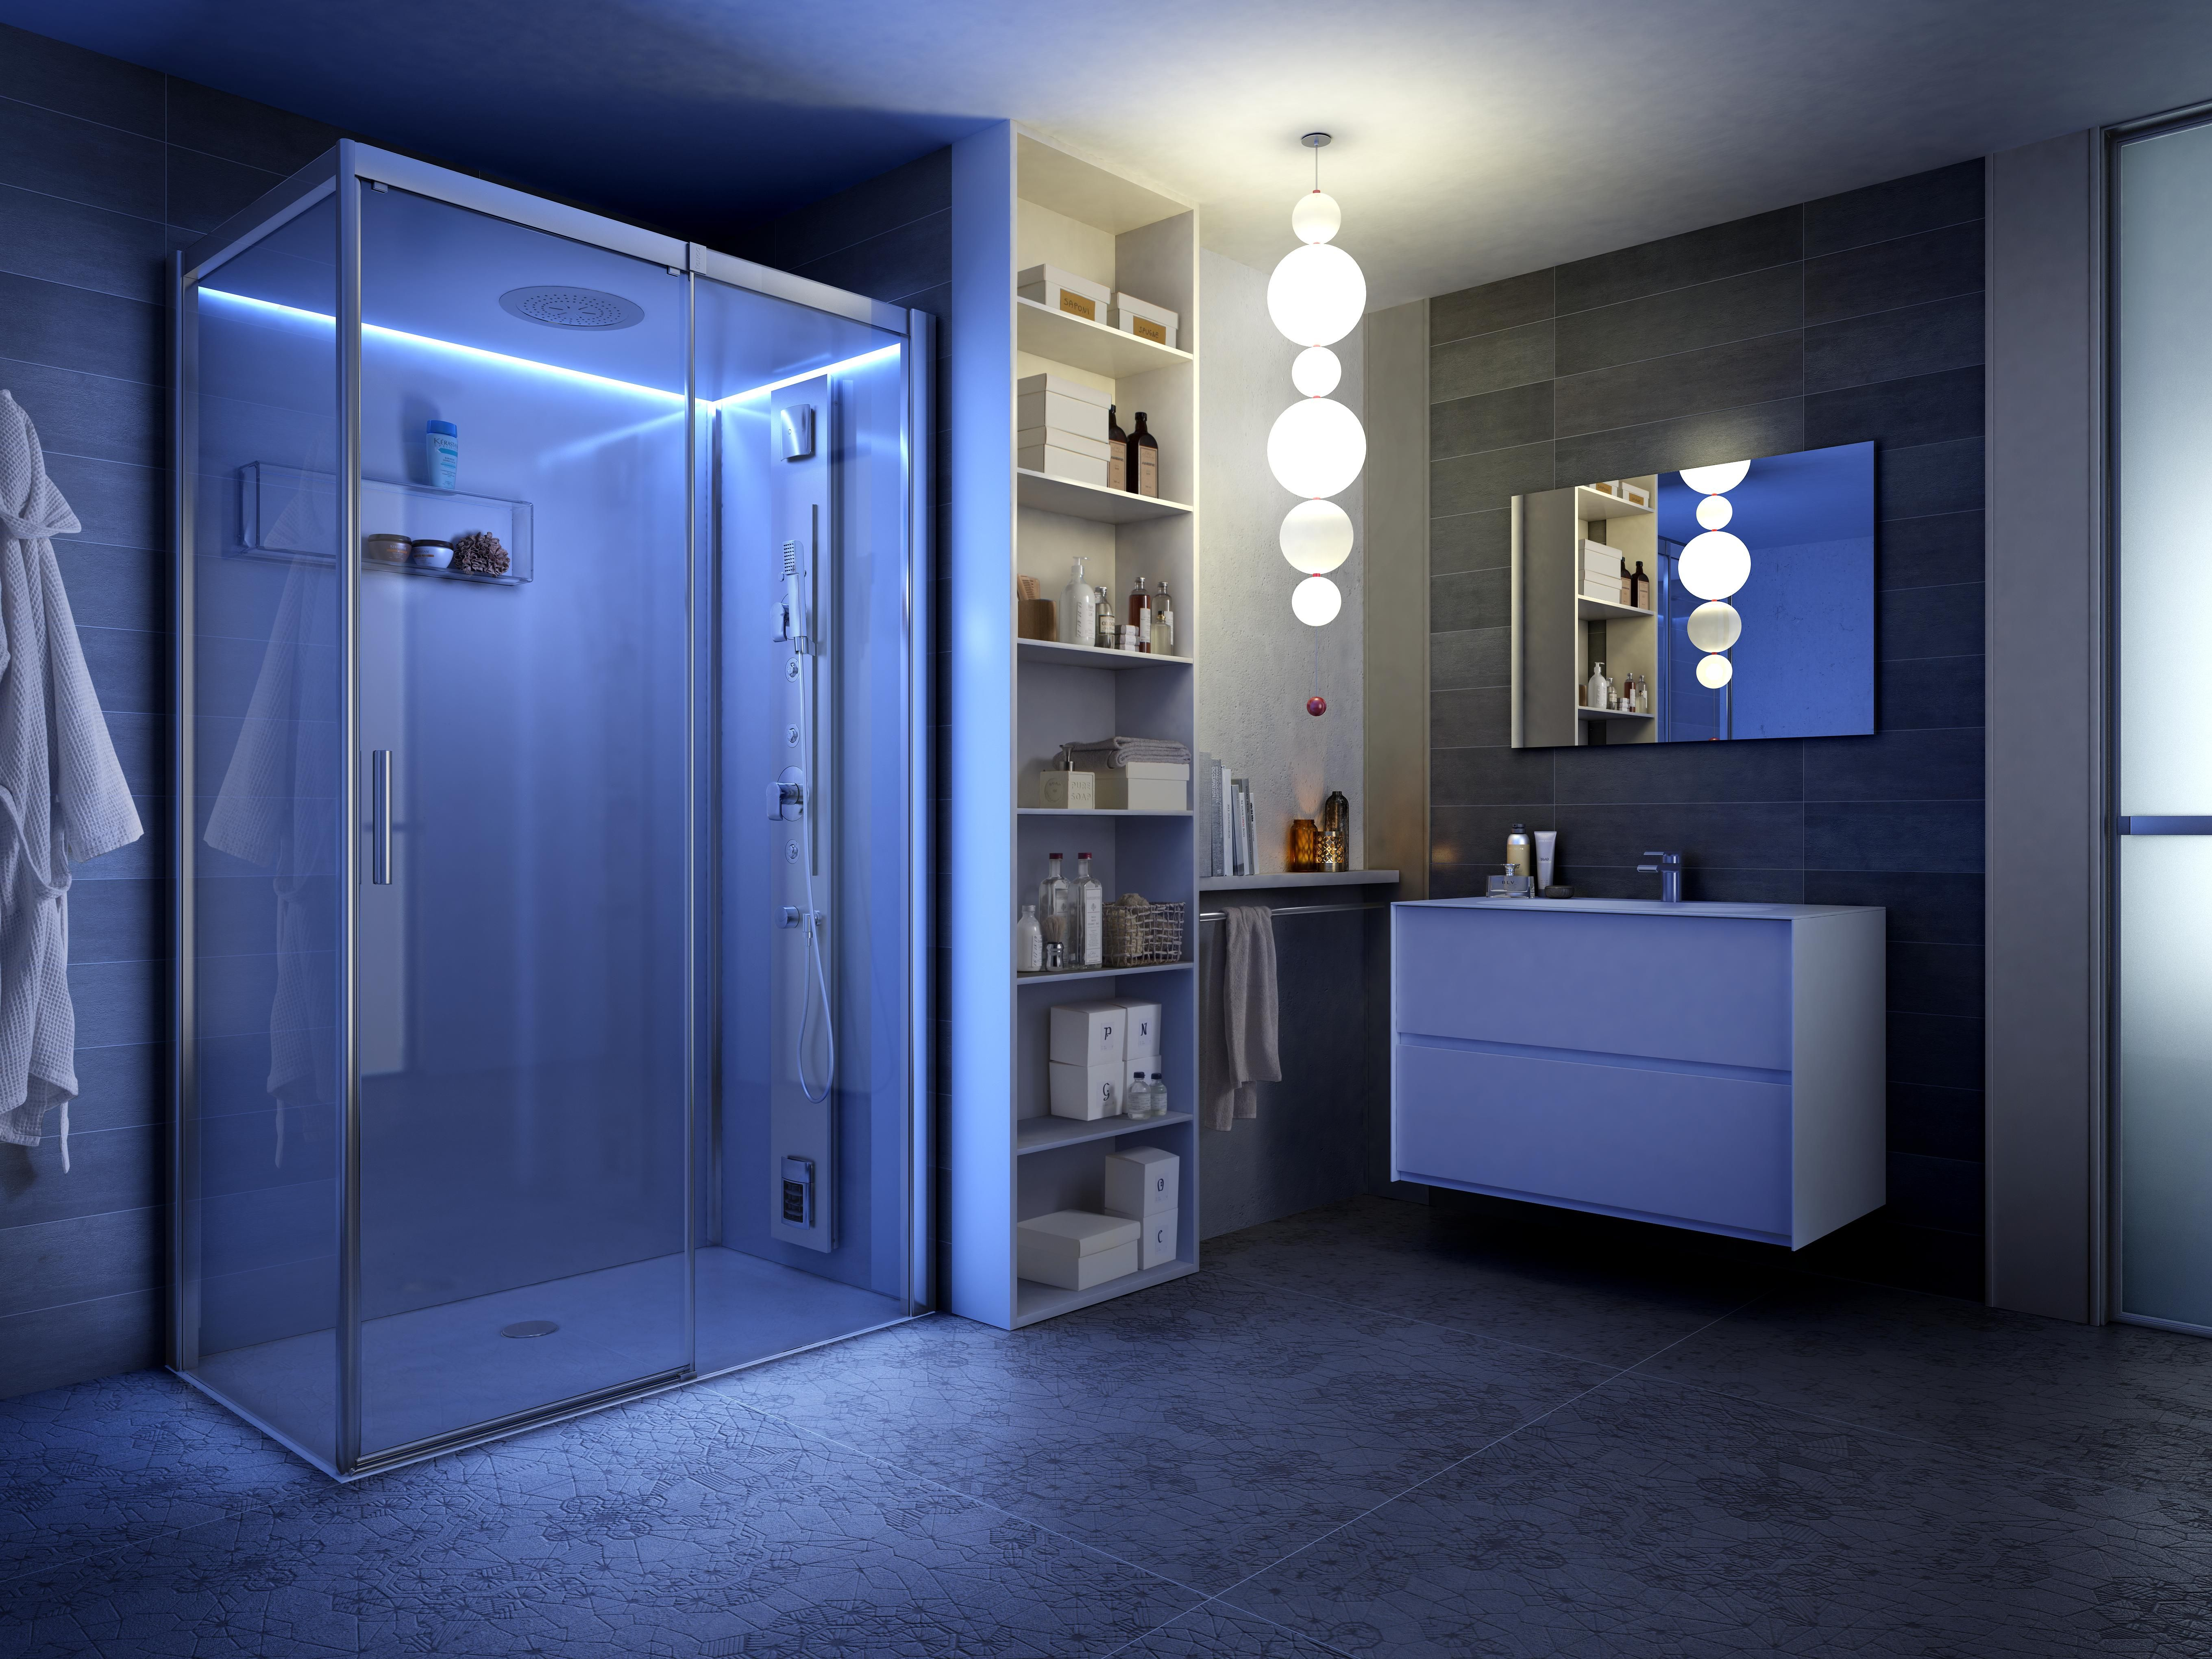 The perimeter mood lighting of Reloaded #shower cabin lights up this ...